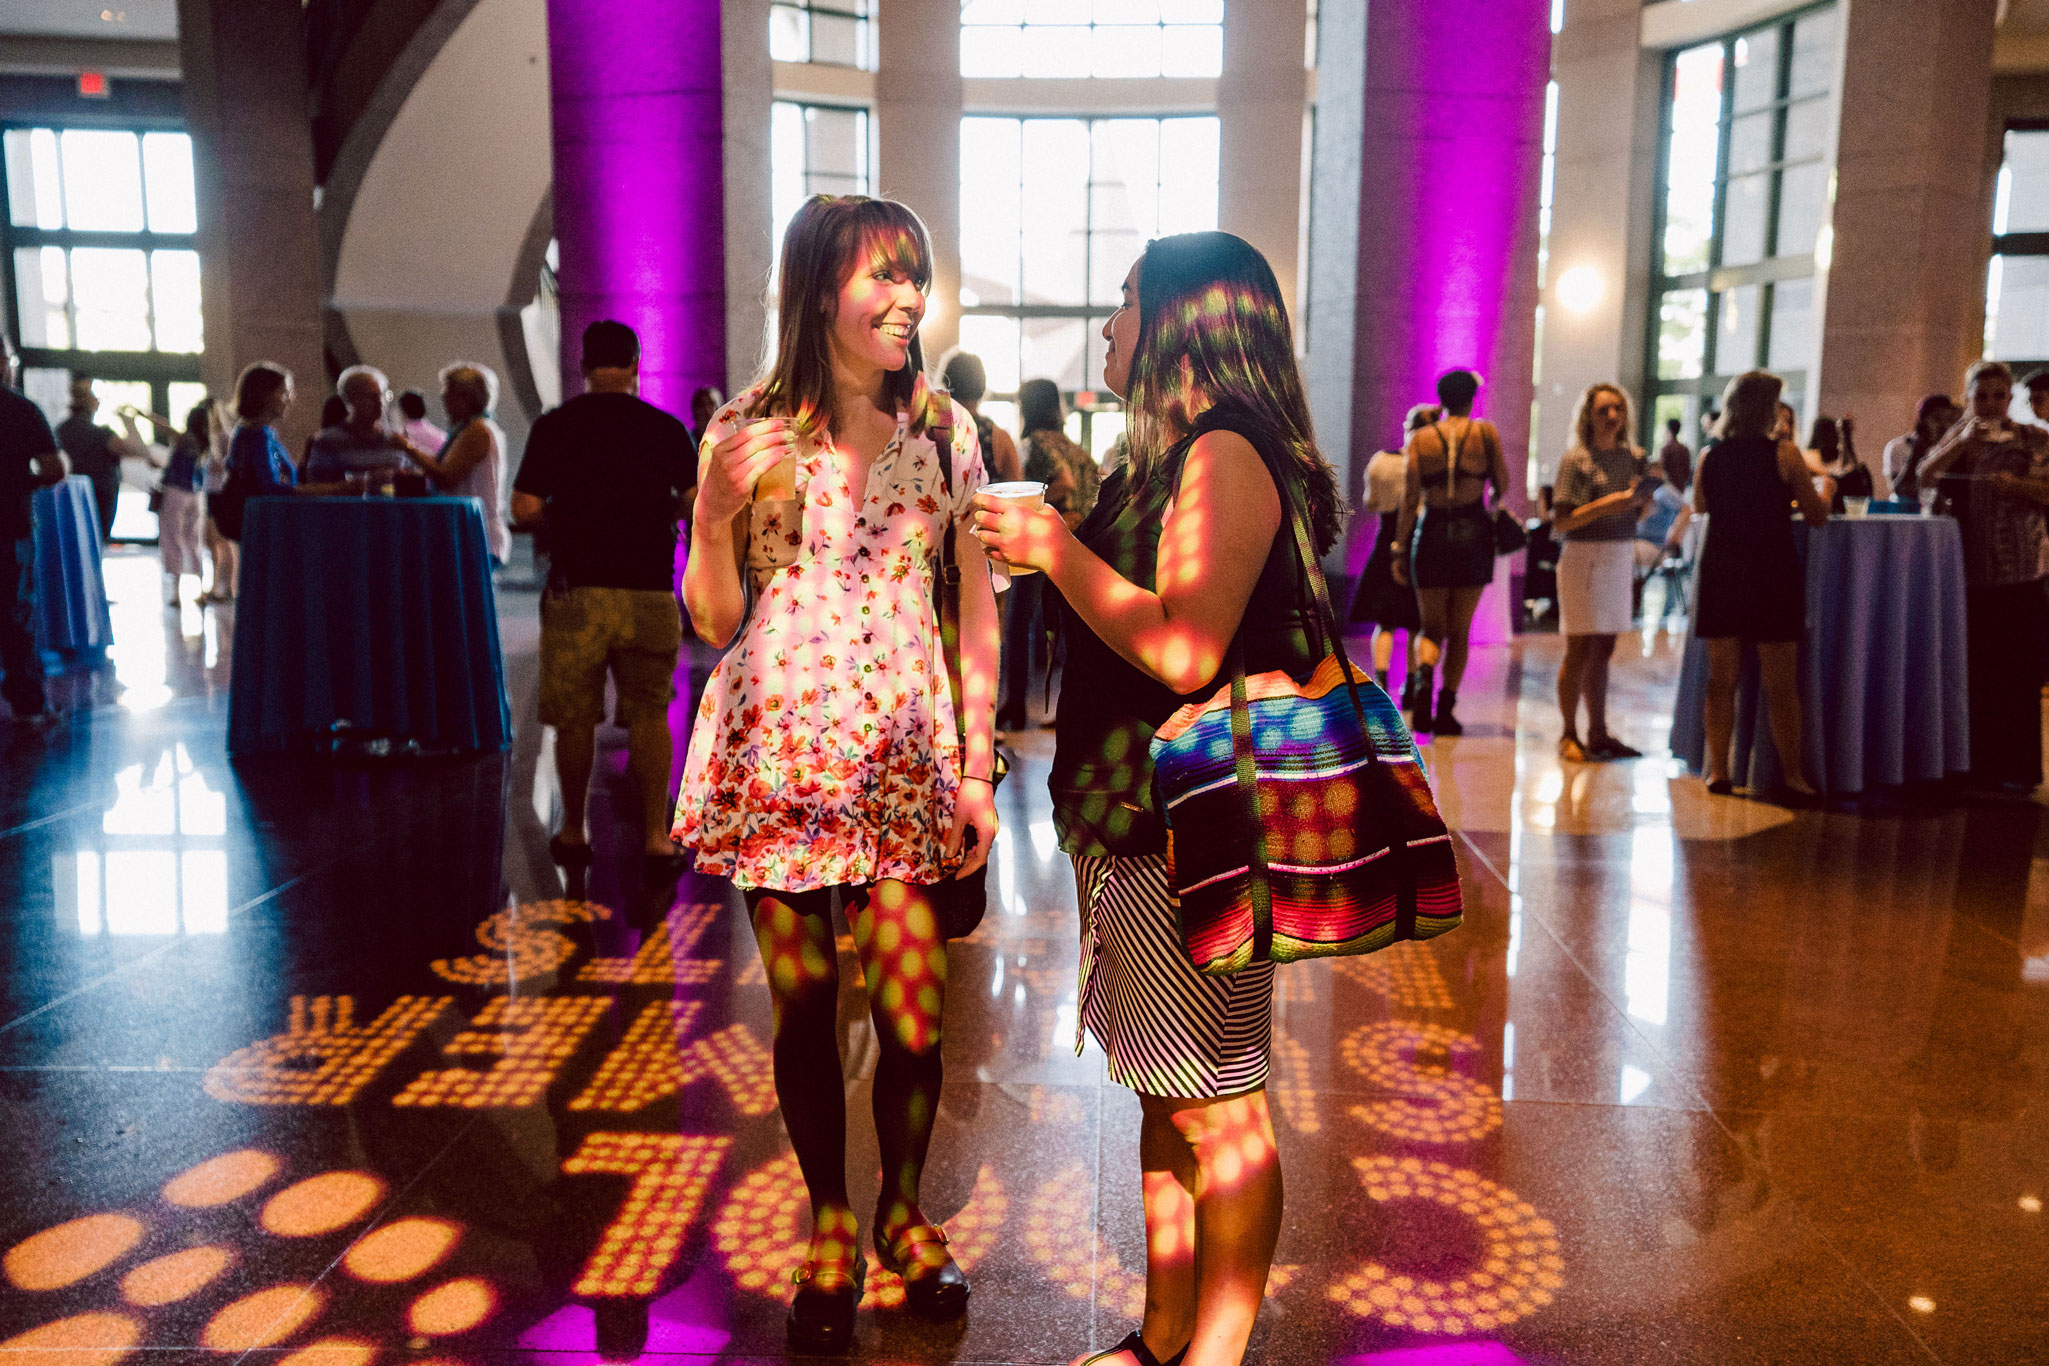 The Bullock Museum's Cool Summer Nights series returns this year with three free events on June 21, July 19 and August 9.